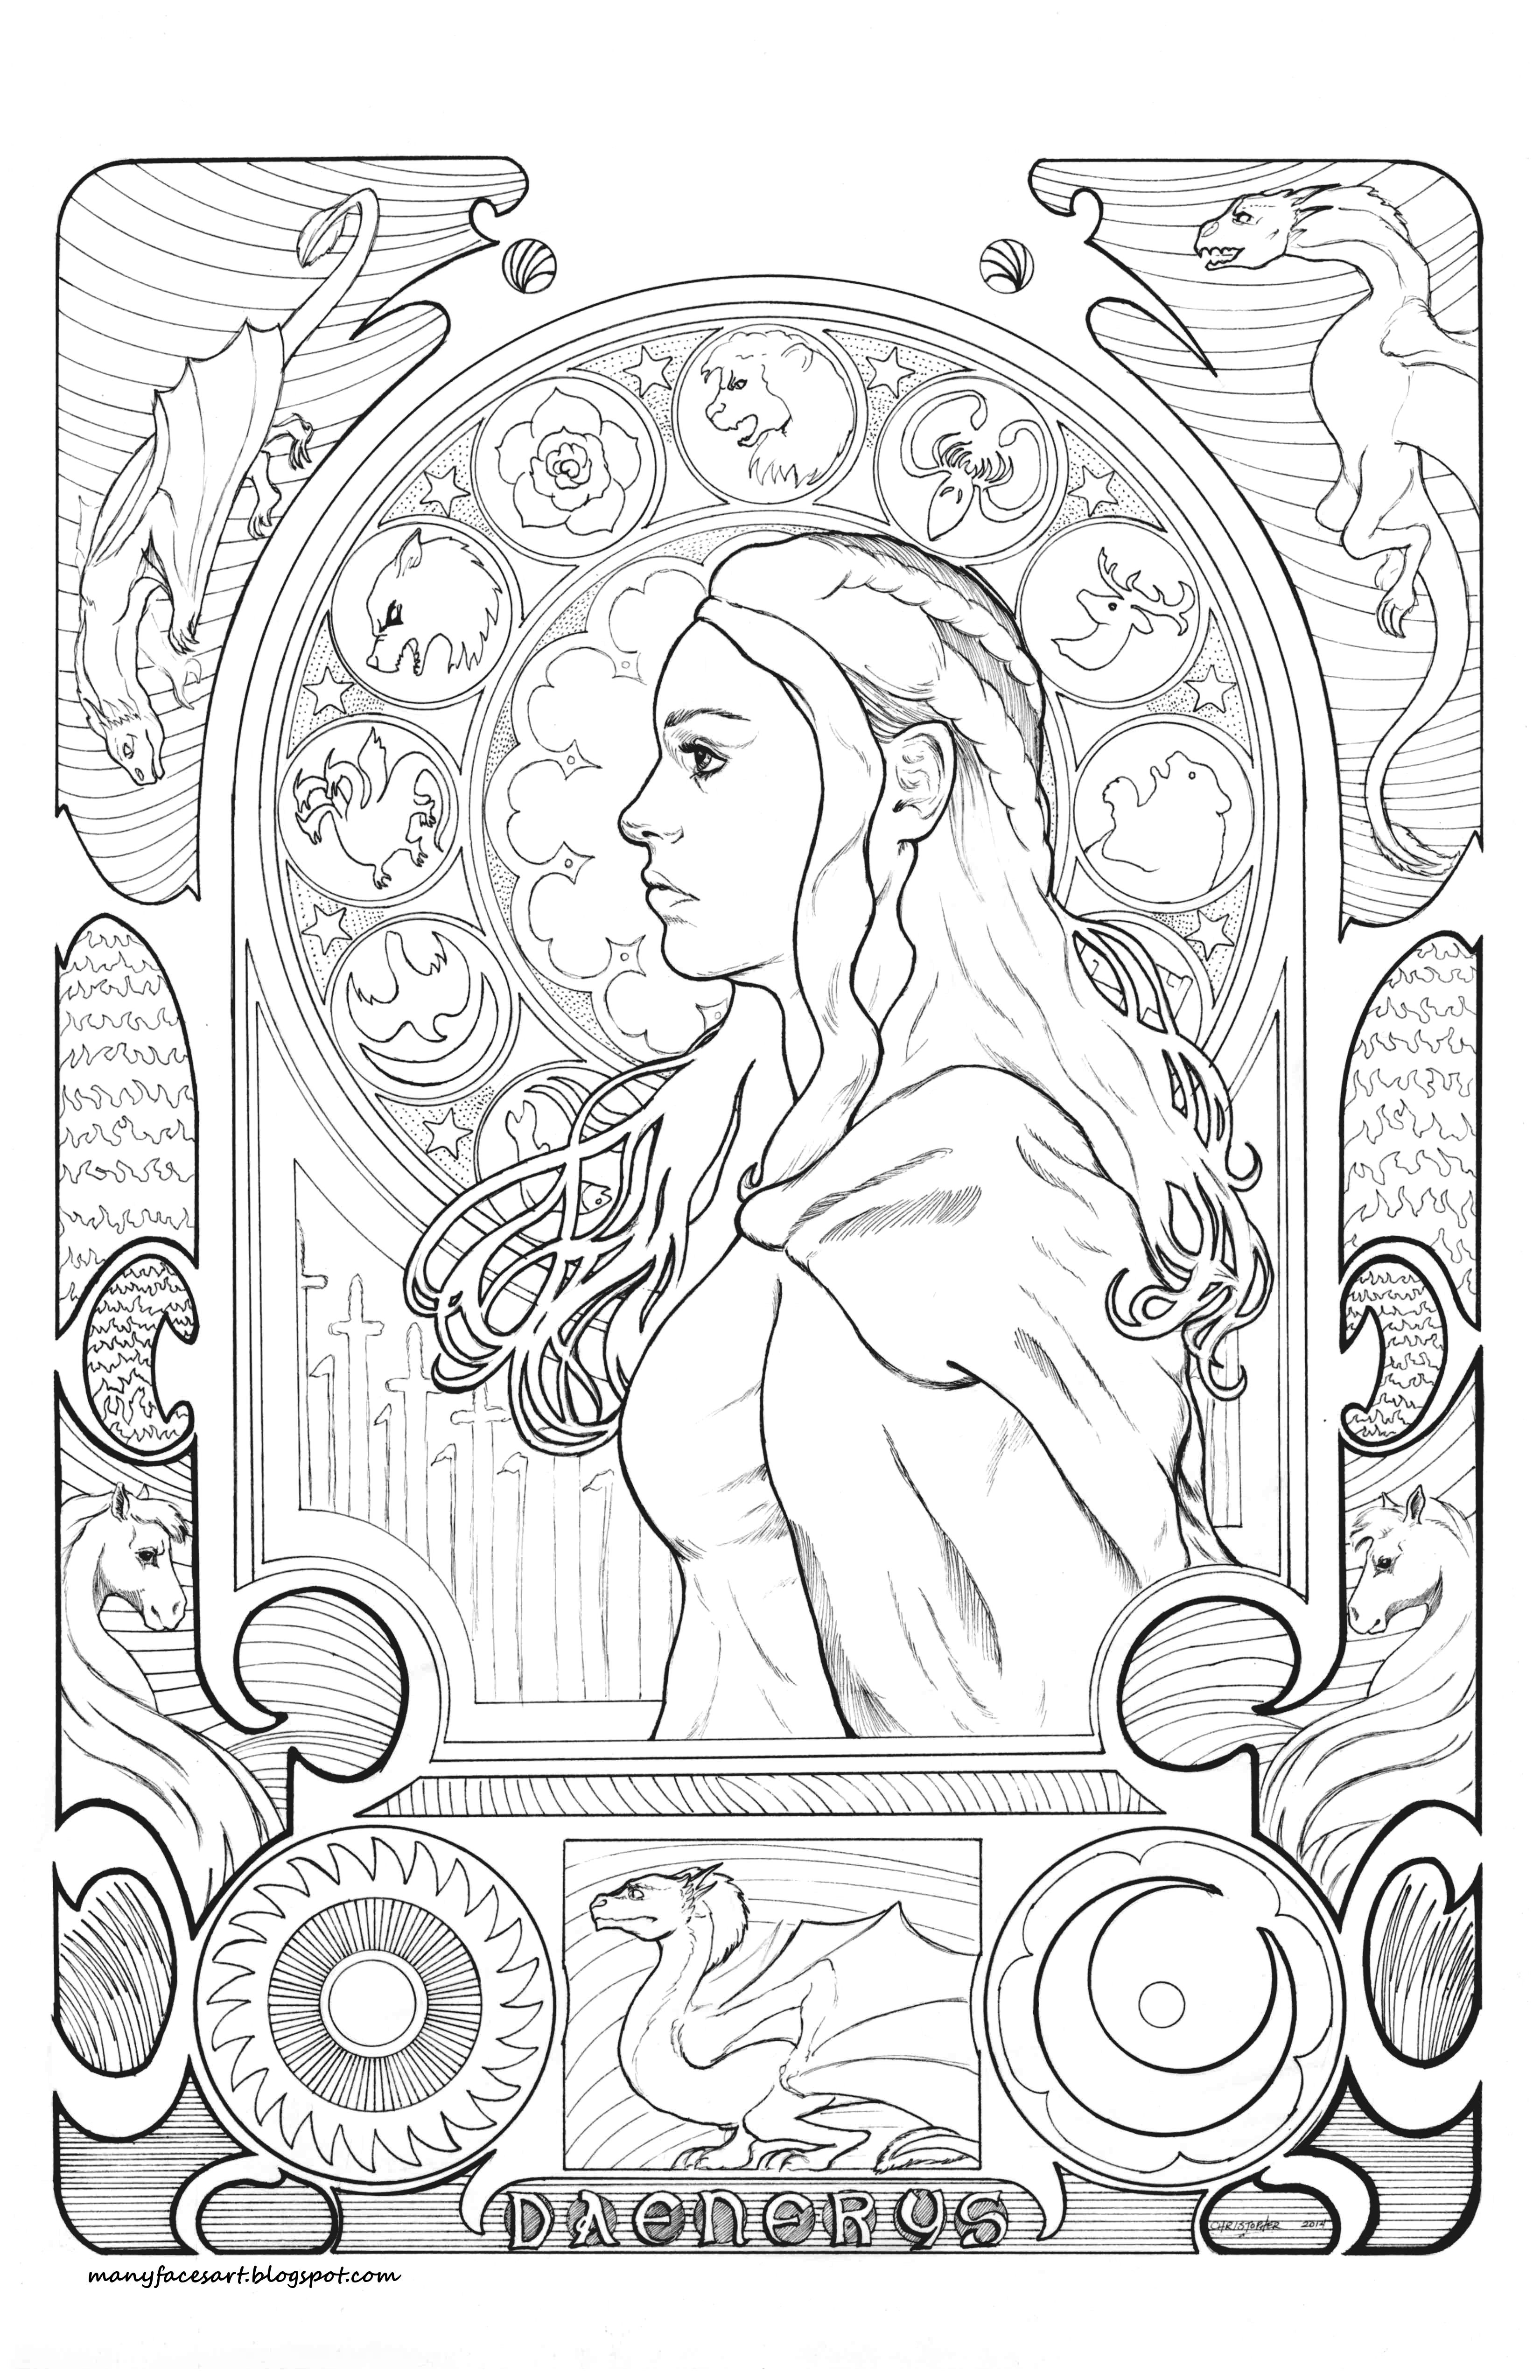 My Art Nouveau Game Of Thrones Inspired Image Of Danaerys